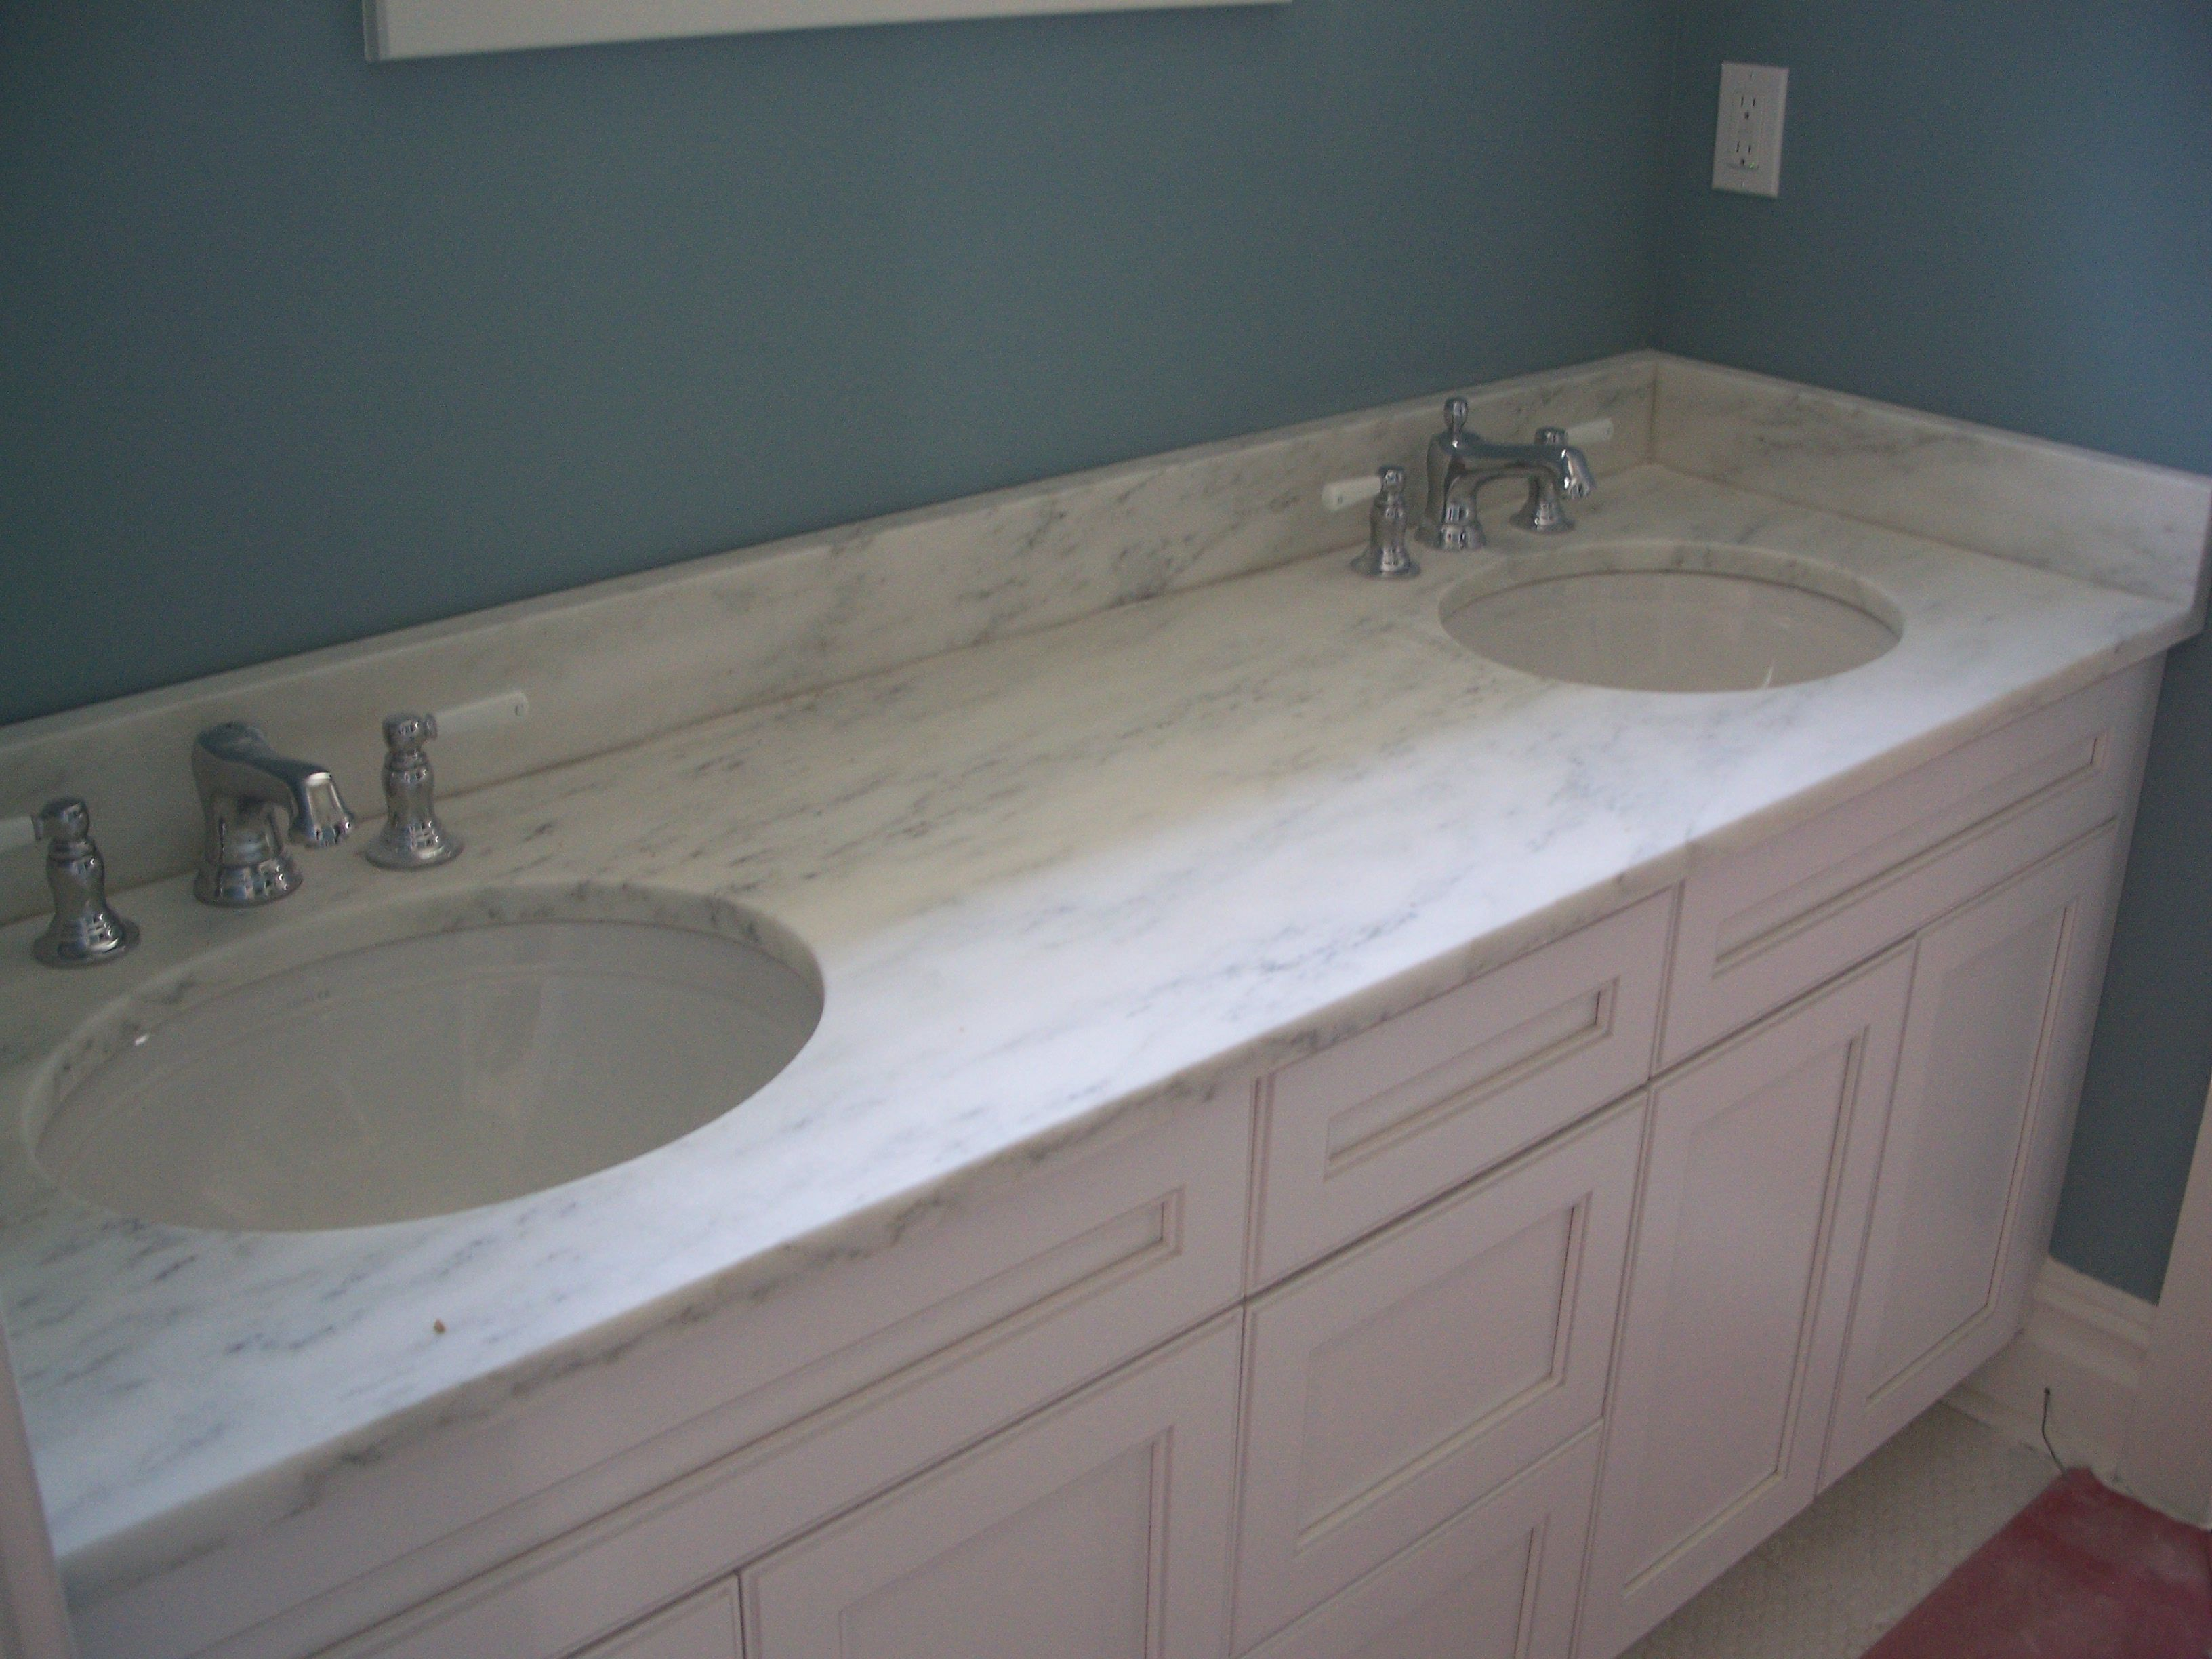 Bathrooms With Marble Countertops Image Result For Bathroom Marble Vanity Top Pictures